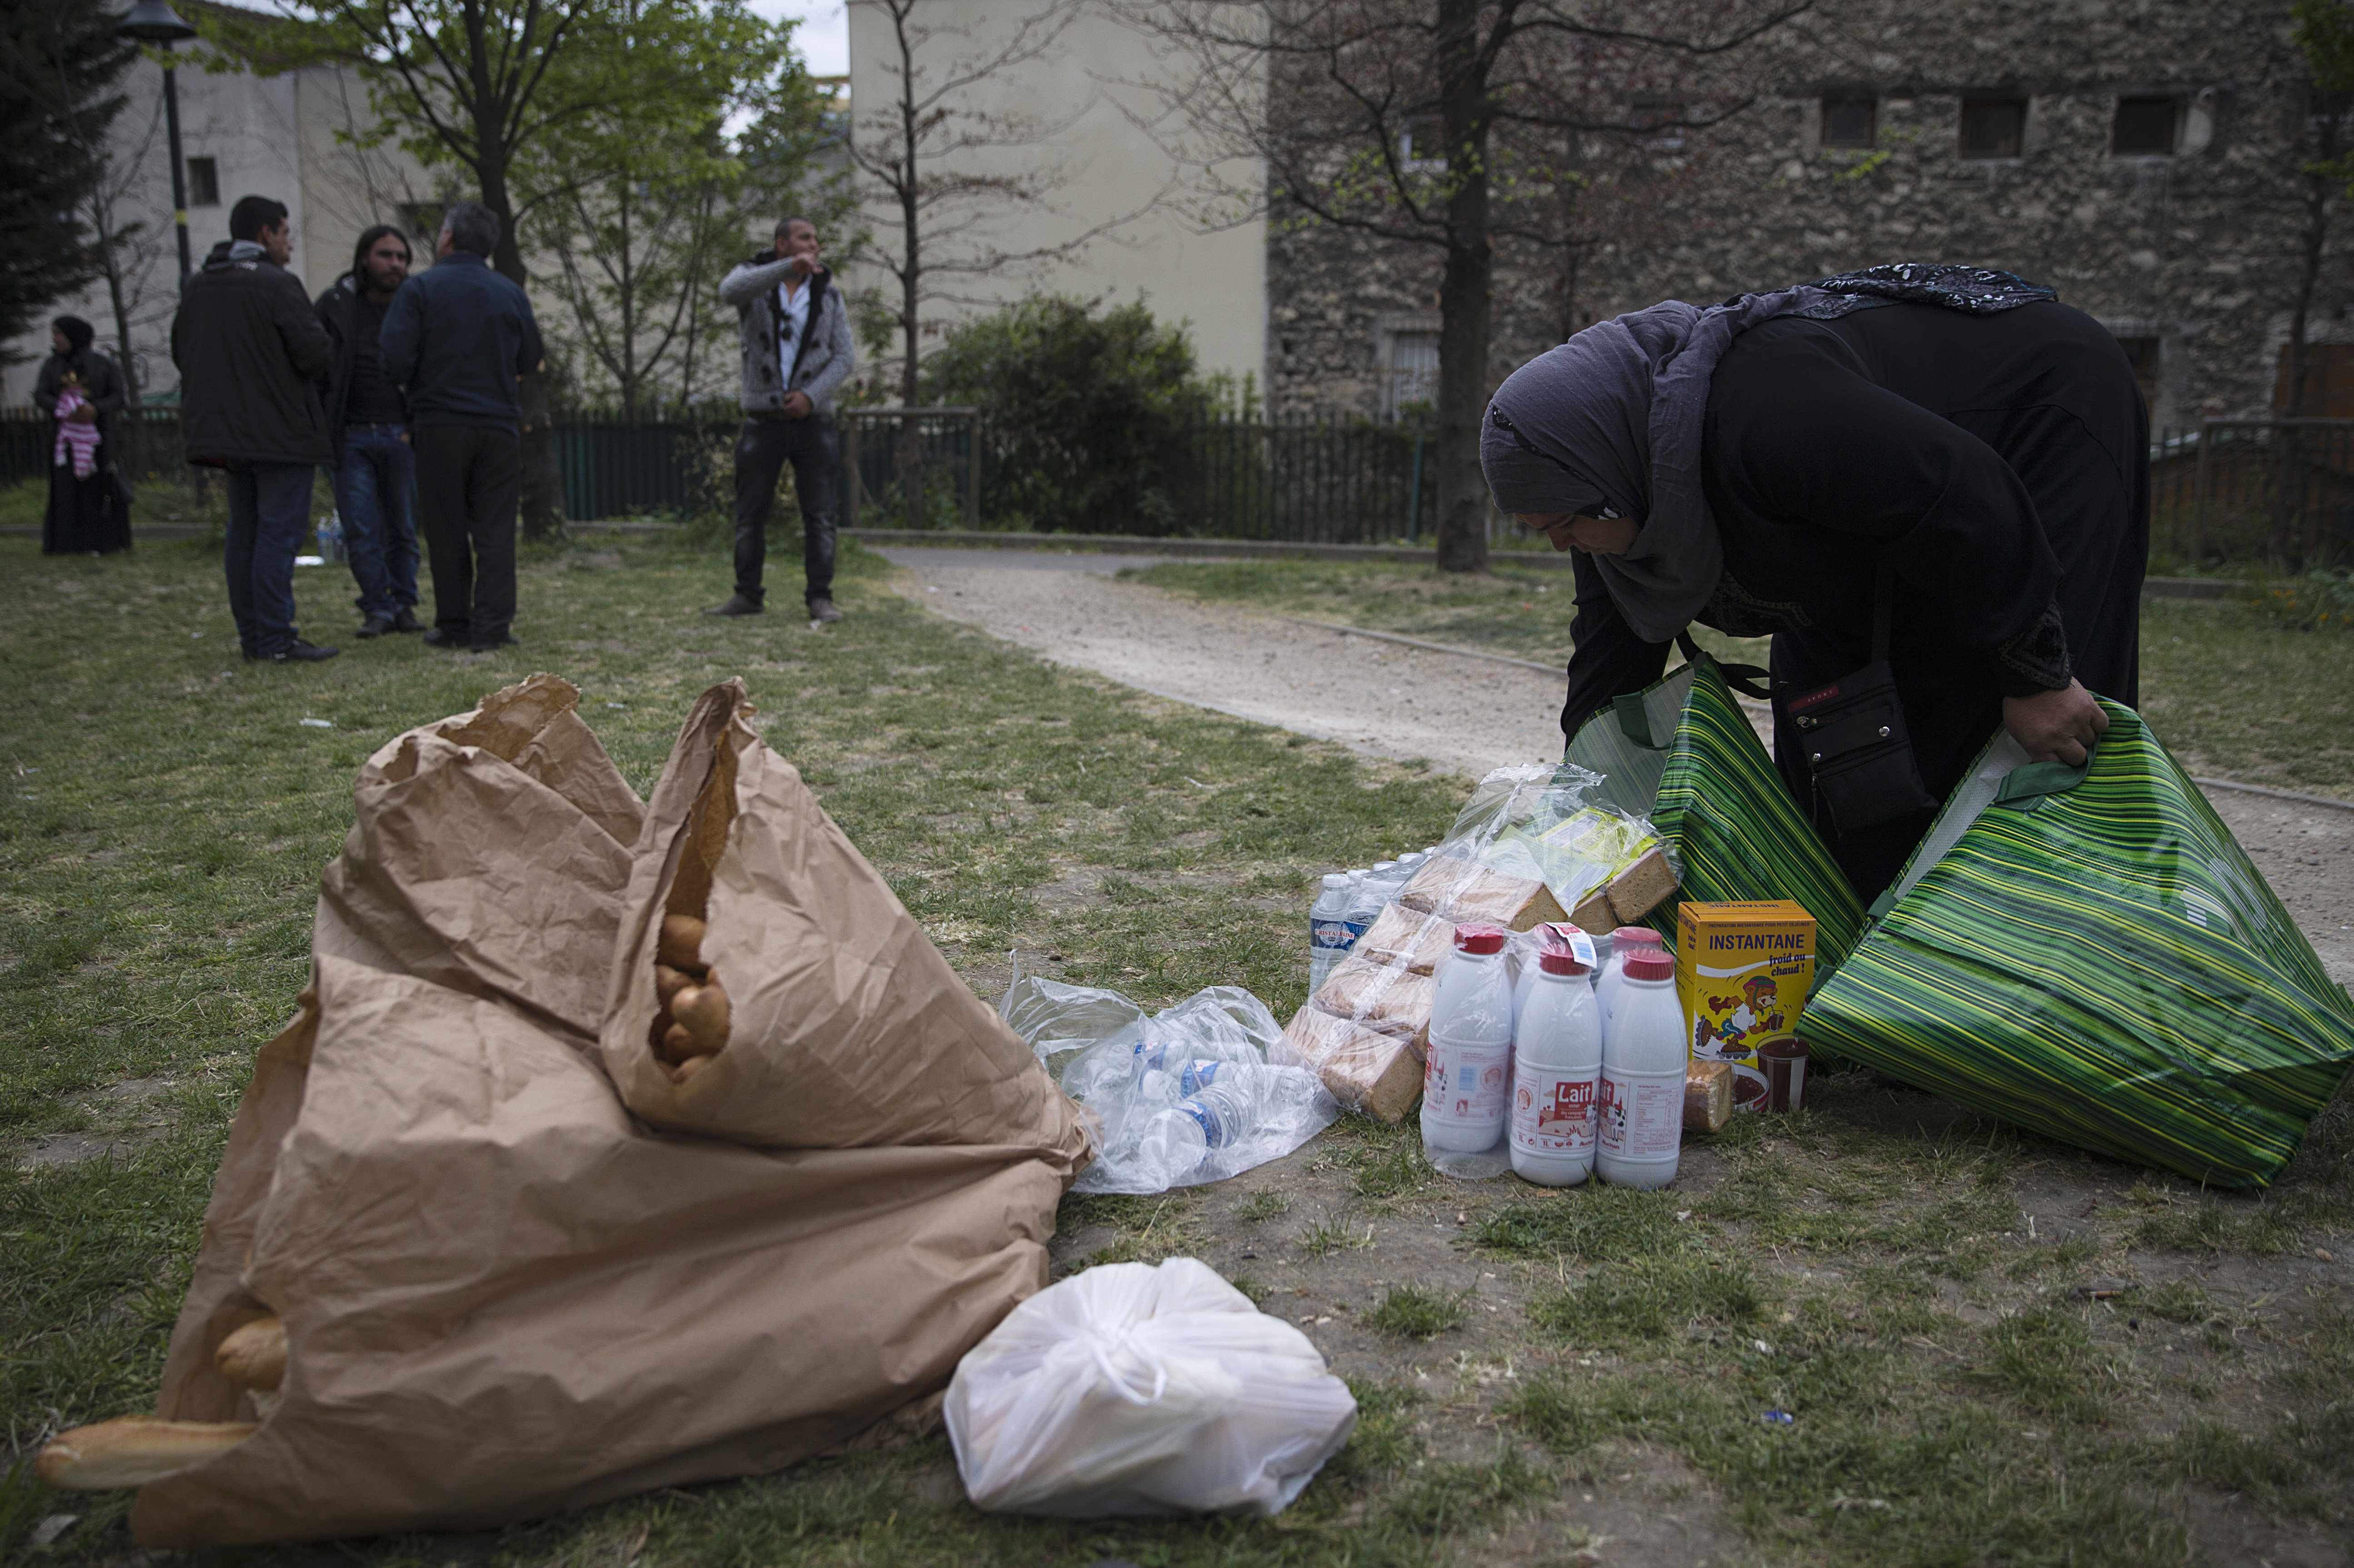 A Syrian refugee woman packs food on April 21, 2014 in the Edouard Vaillant park in Saint-Ouen, north of Paris, where the refugees spend most of their days awaiting to find housing solutions